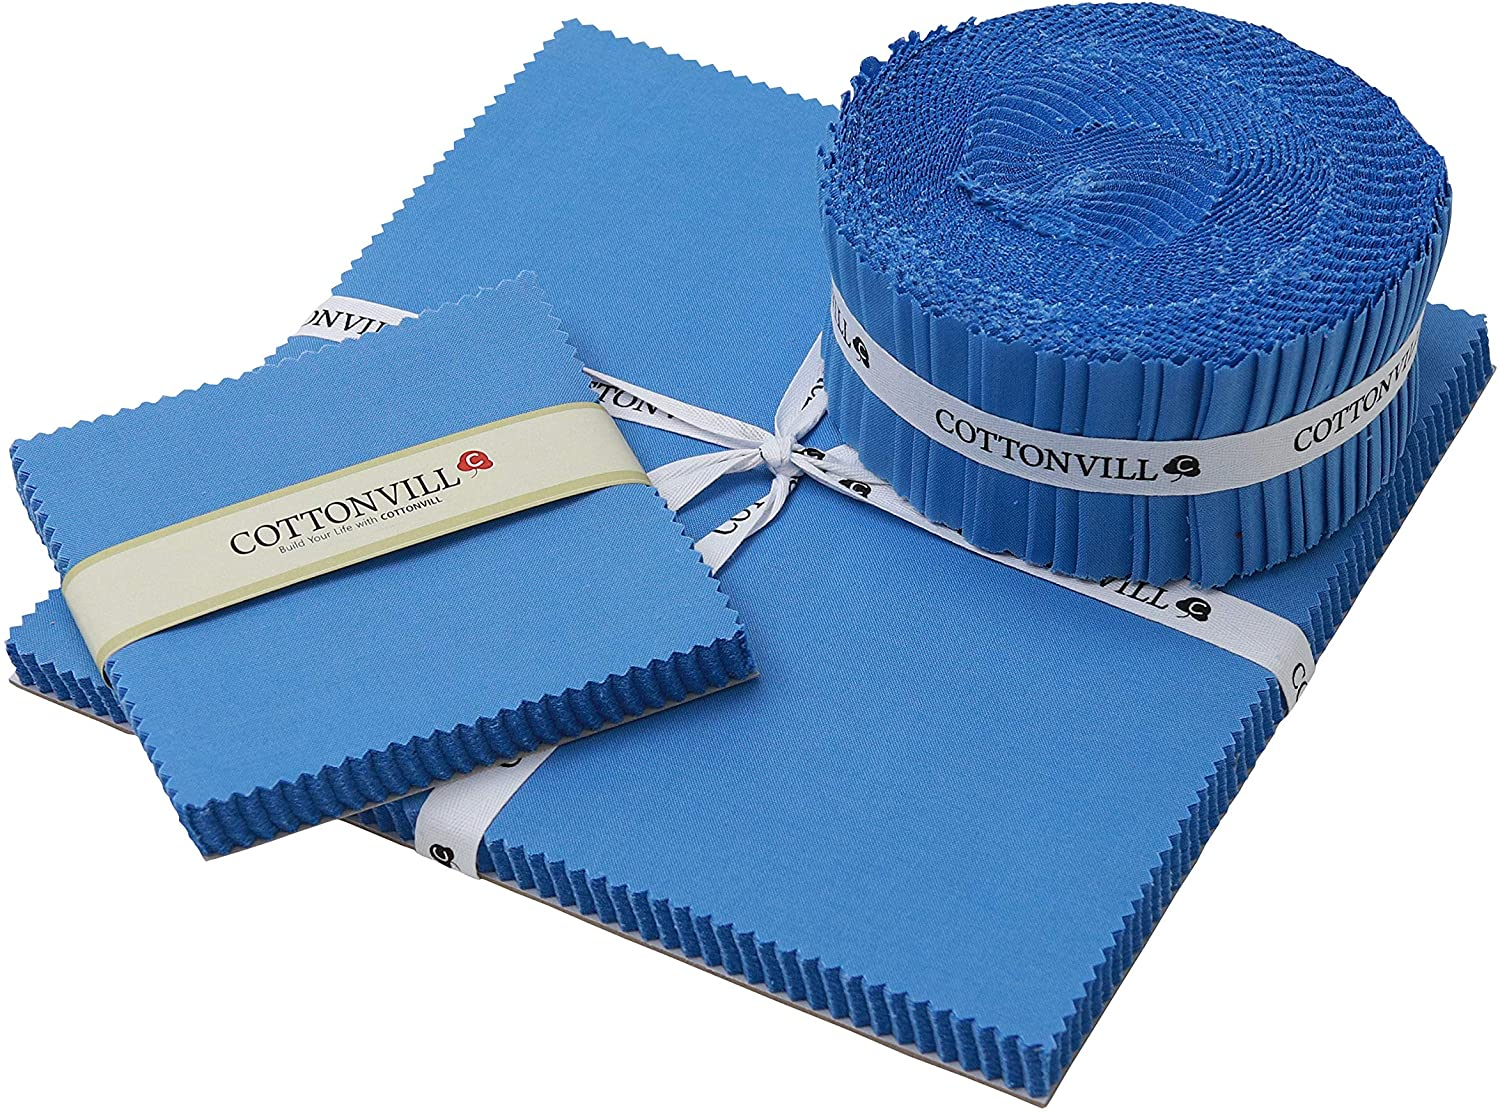 COTTONVILL 20COUNT Cotton Solid Quilting Fabric (2.5inch Strip, 35-Azure Blue)